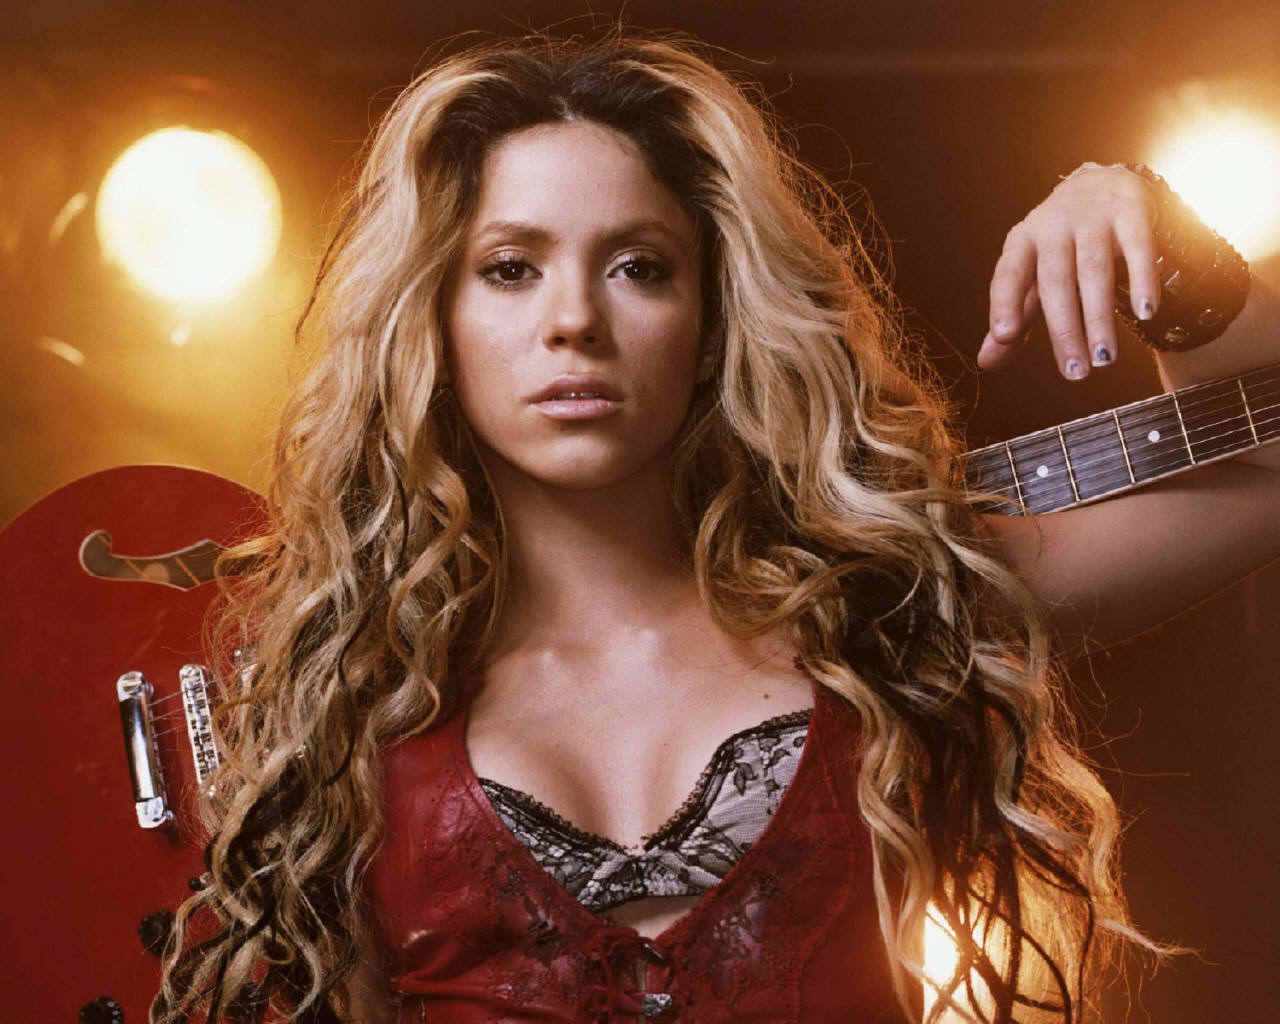 Shakira and Pitbull 'Get It Started' mention Manila on Lyrics Listen to MP3